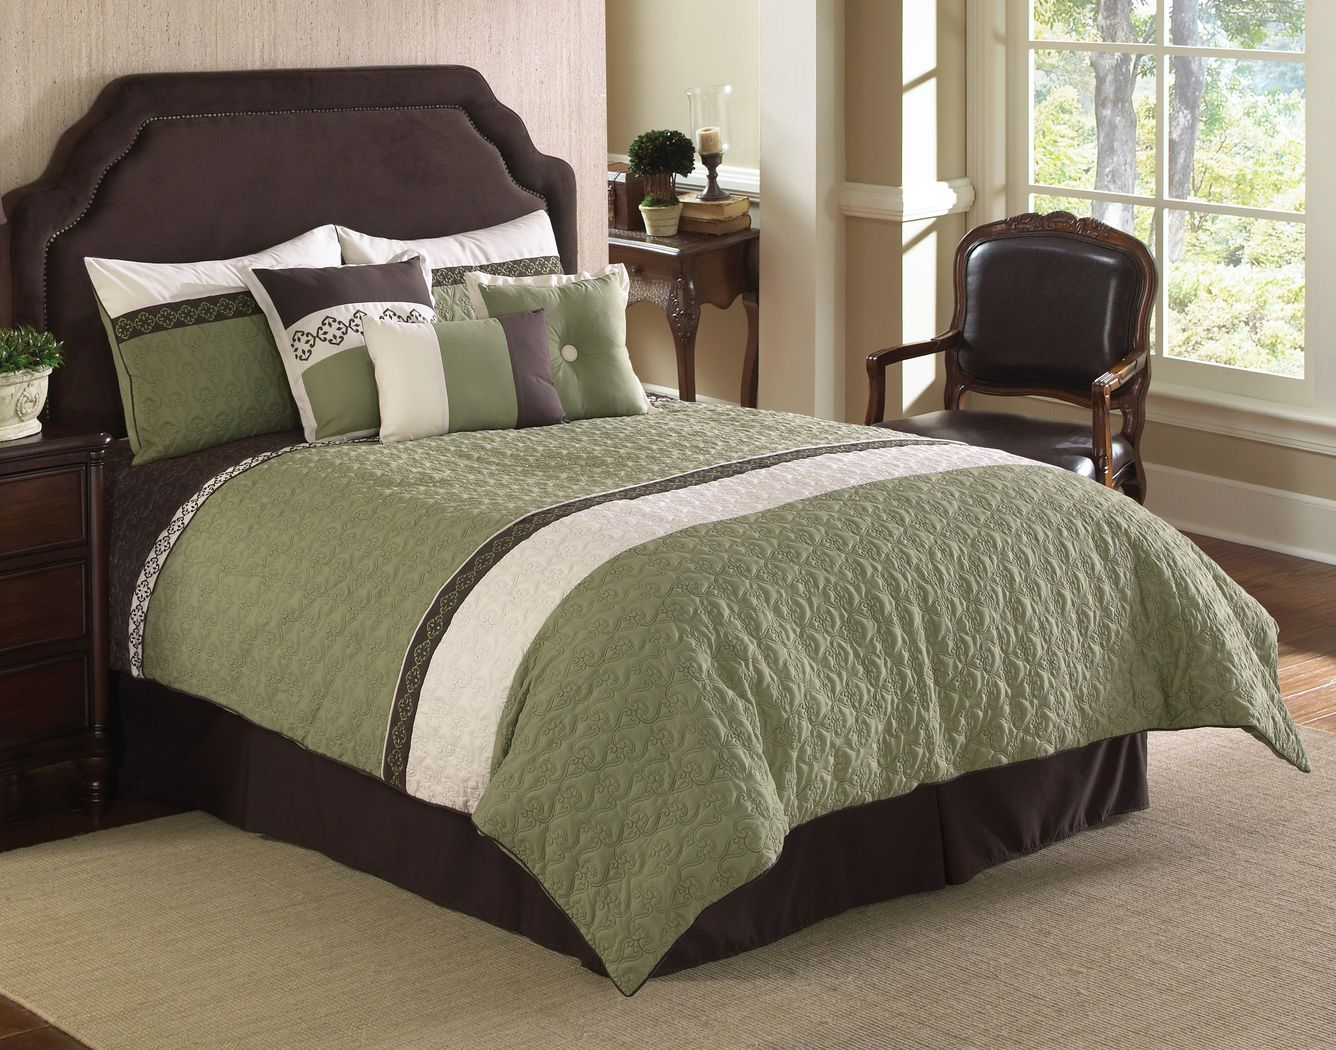 Derrien Green 7 Pc Queen Comforter Set Comforter sets